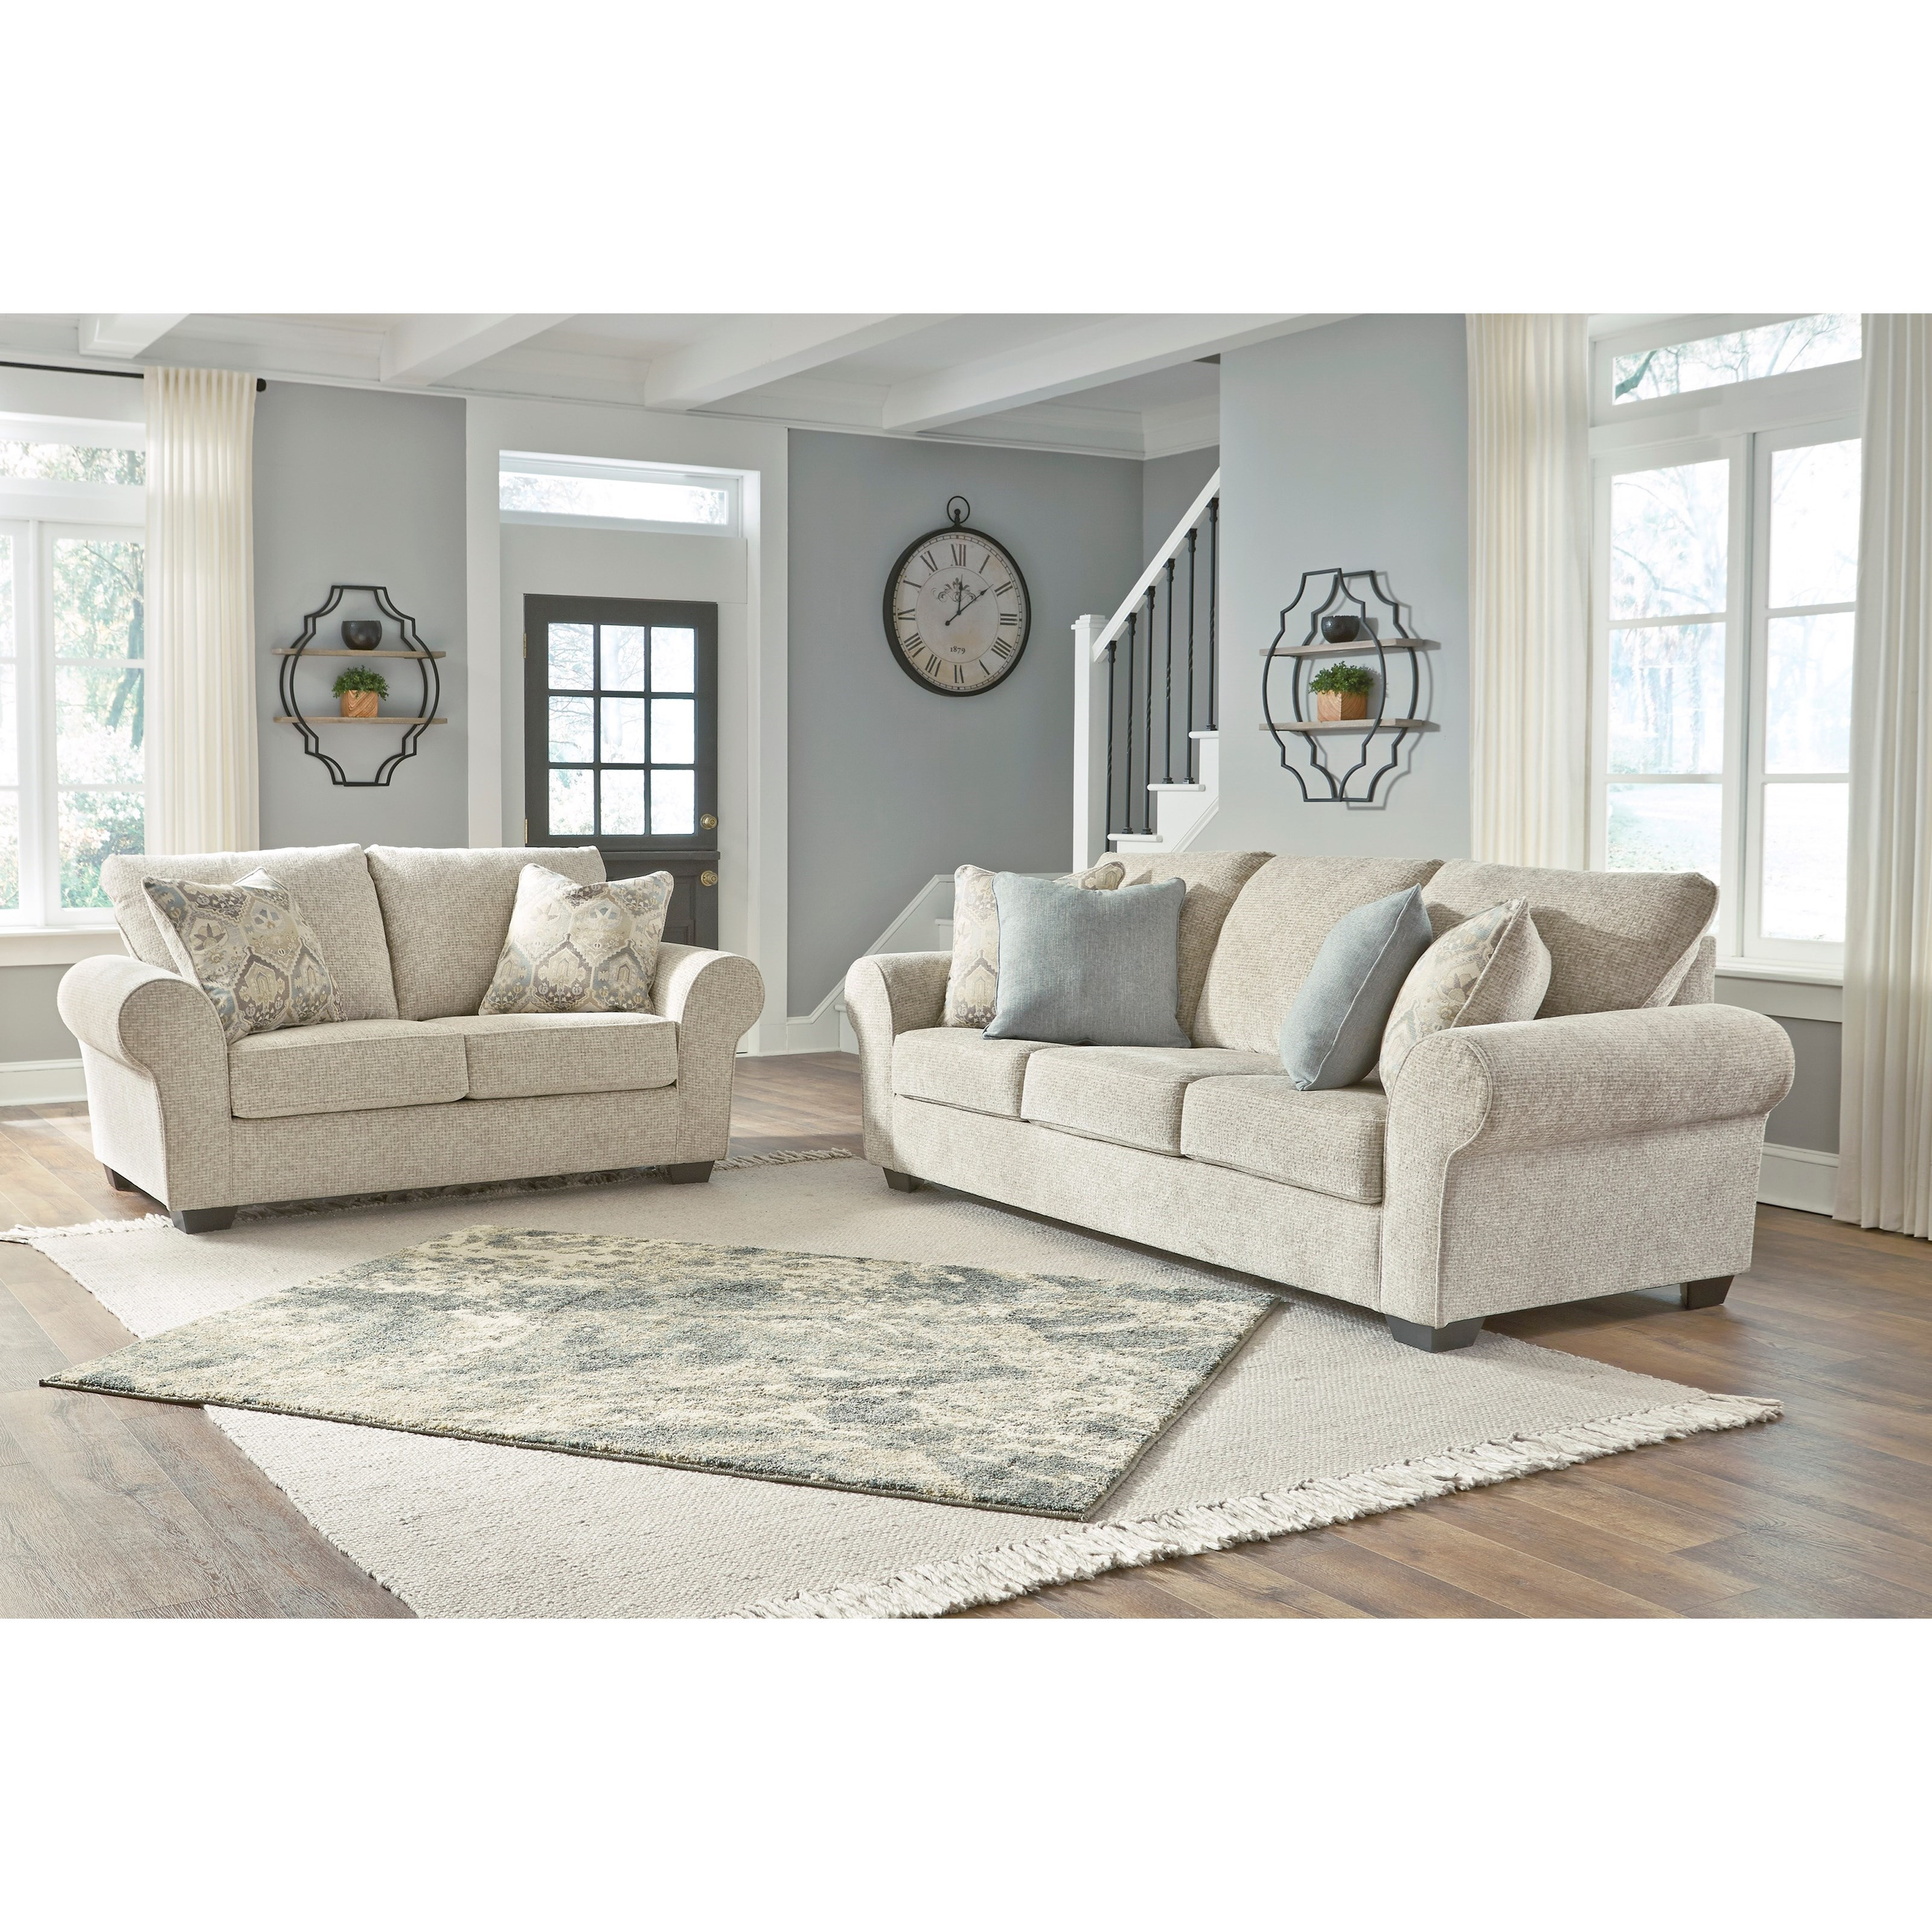 Haisley Living Room Group by Benchcraft at Johnny Janosik